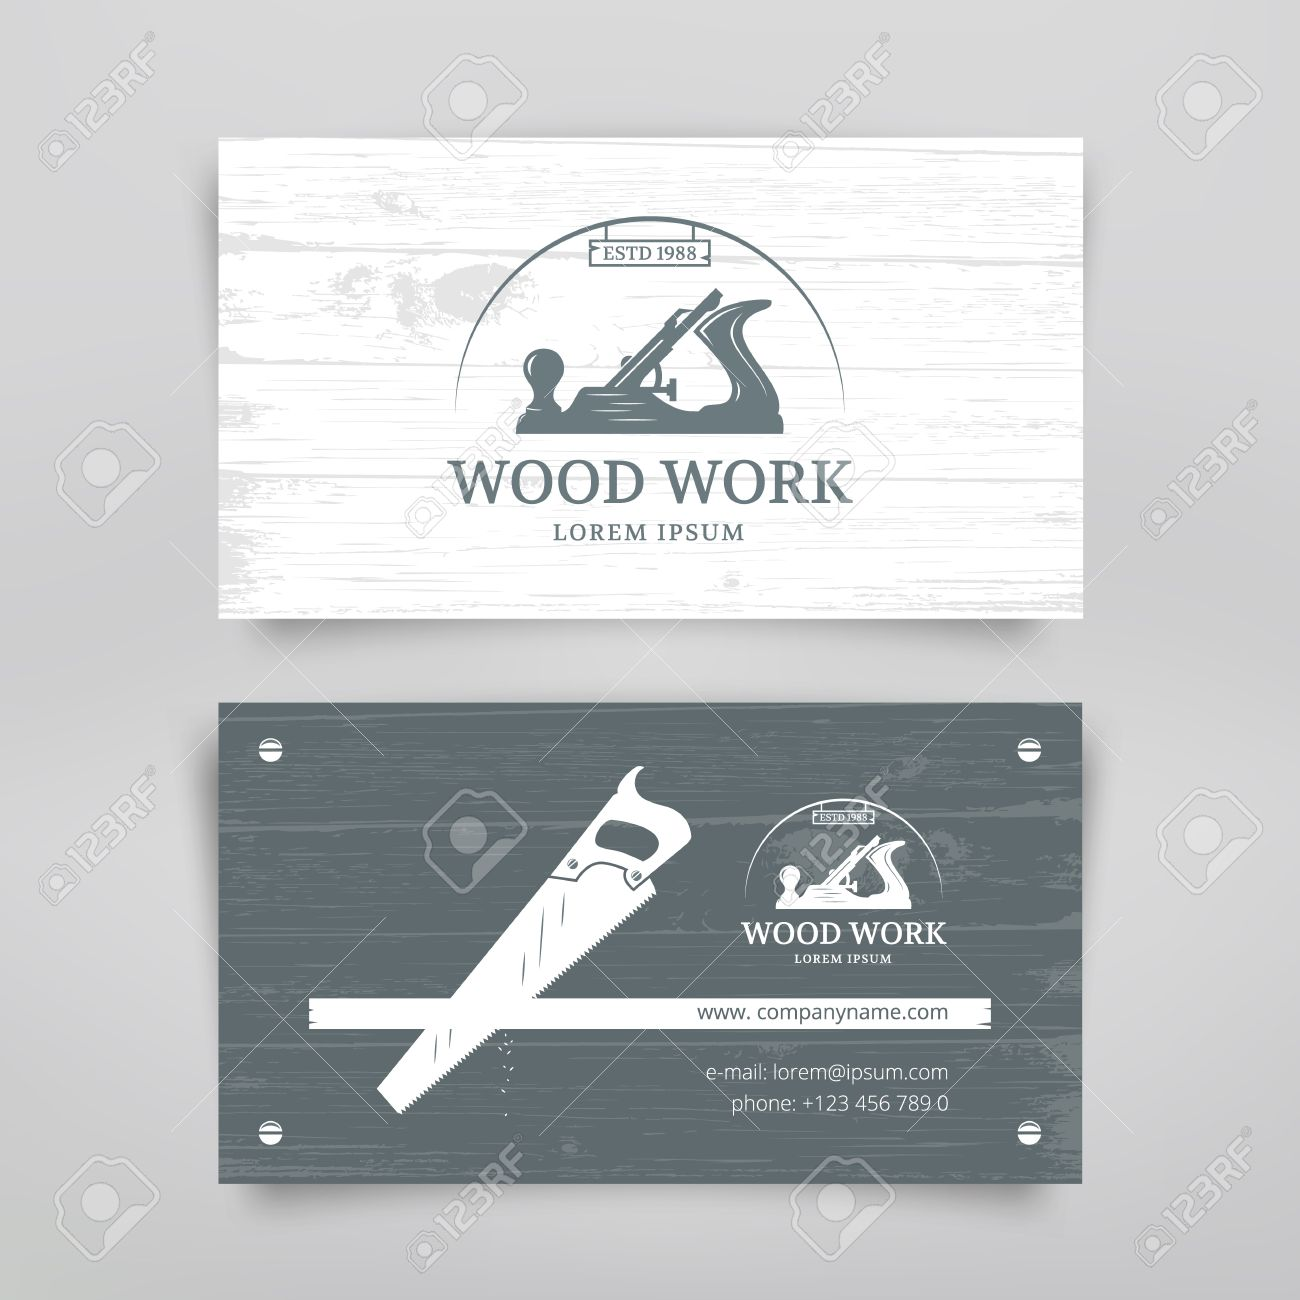 Woodwork vintage style business card design template carpentry vector woodwork vintage style business card design template carpentry tools vector colourmoves